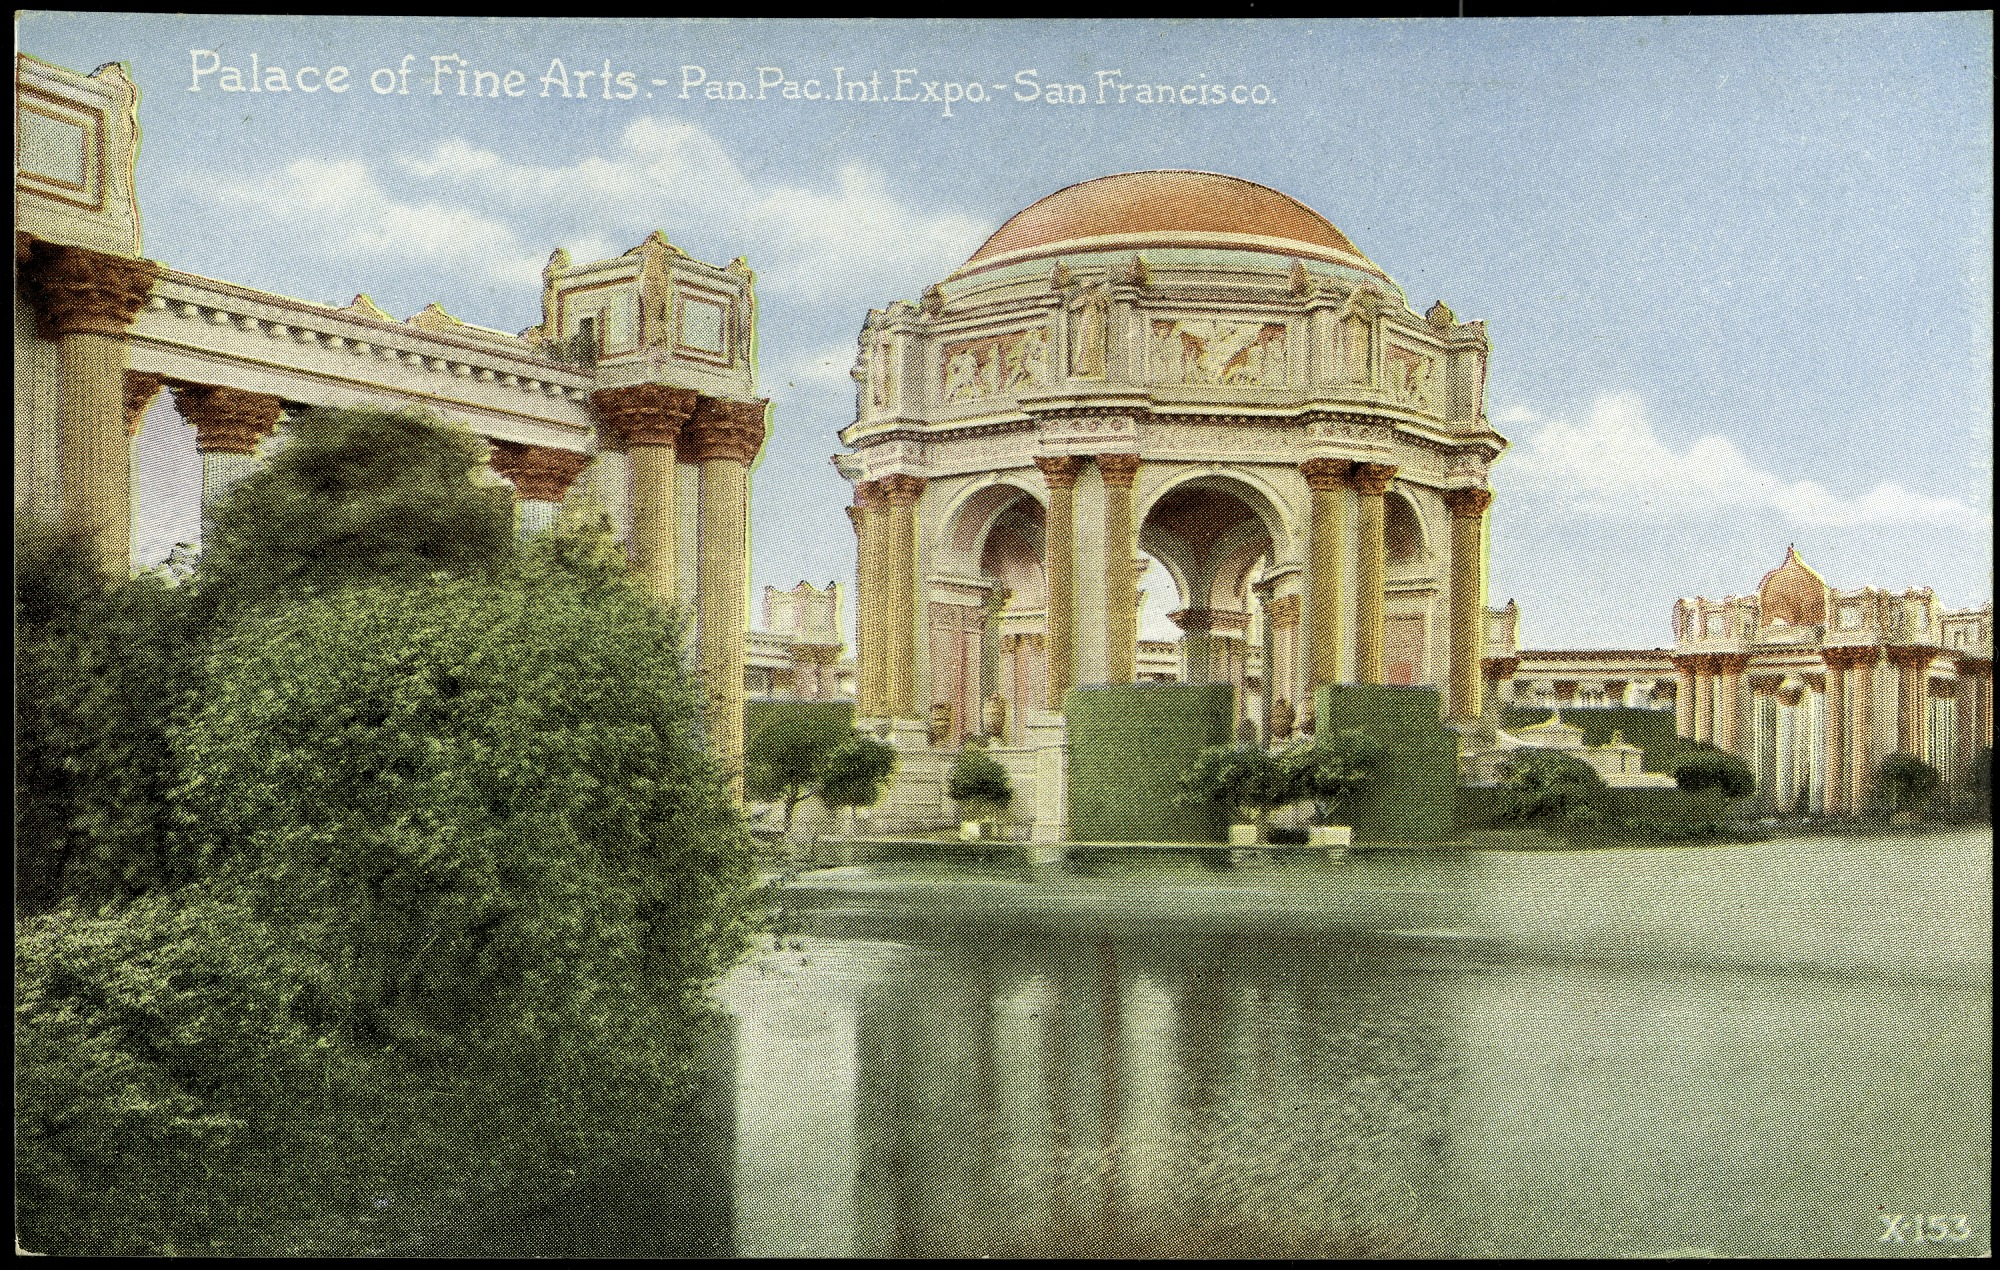 Palace of Fine Arts Postcard from the Panama-Pacific Exposition